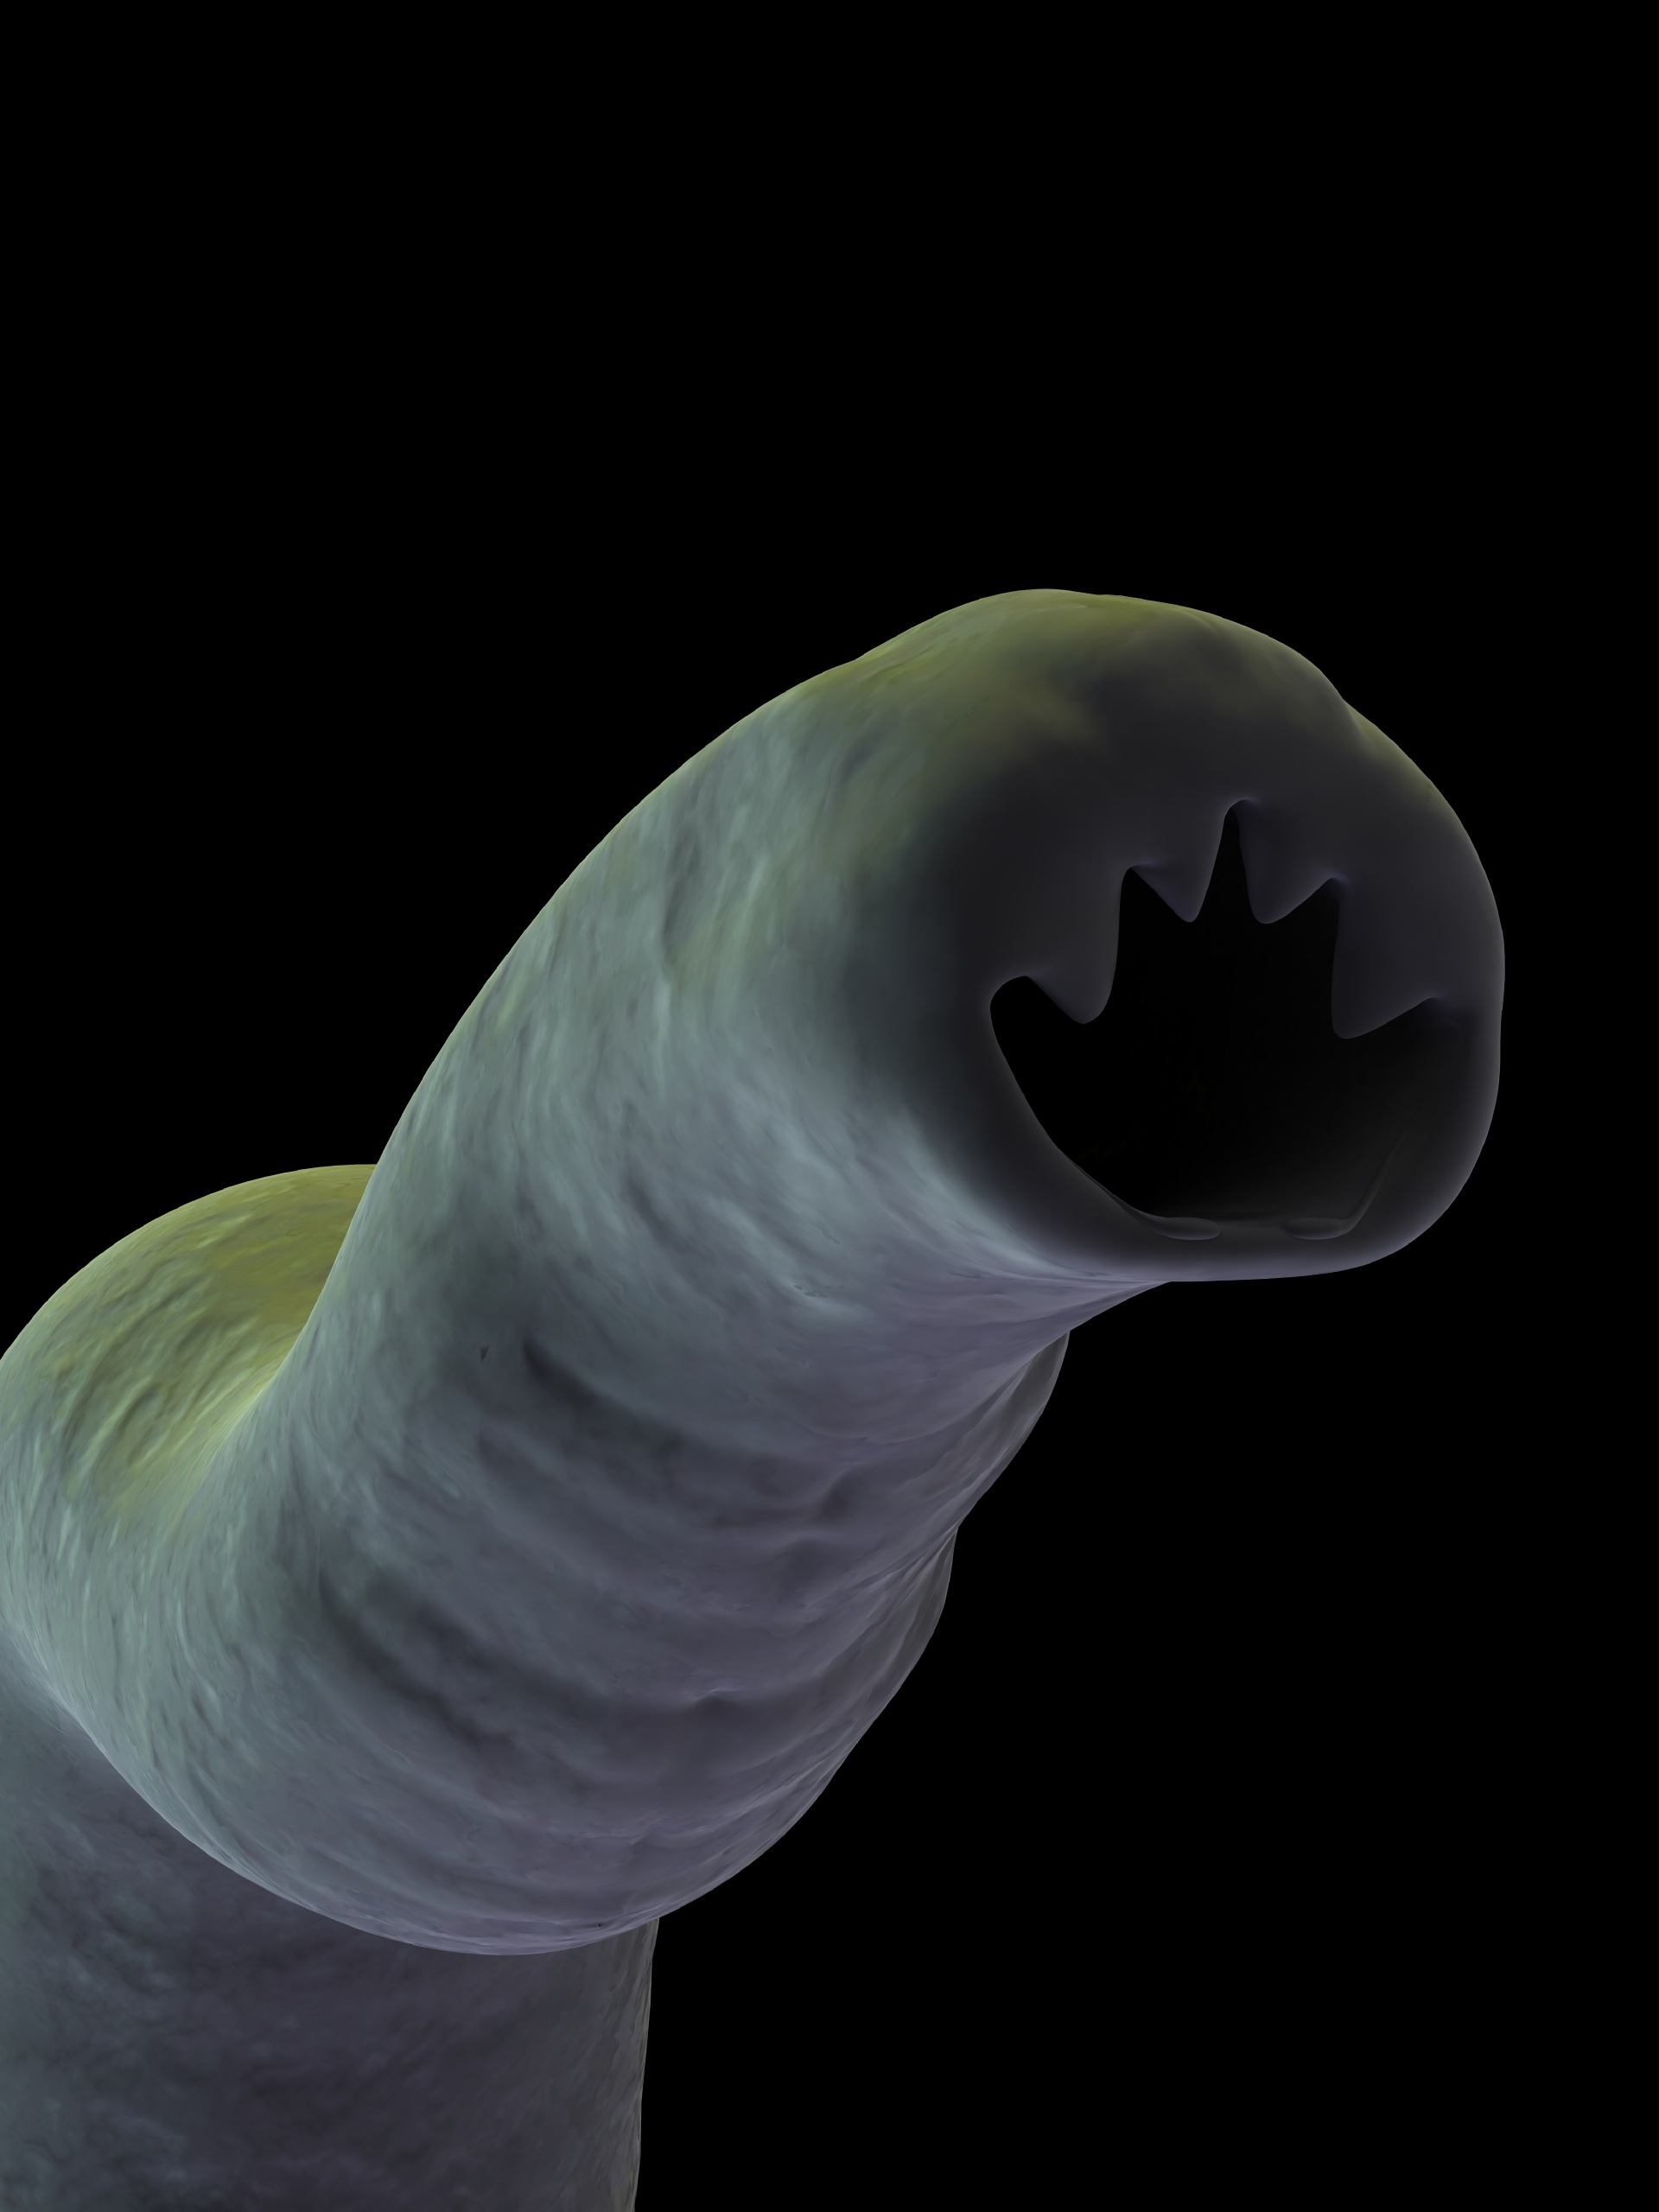 Hookworm in humans face